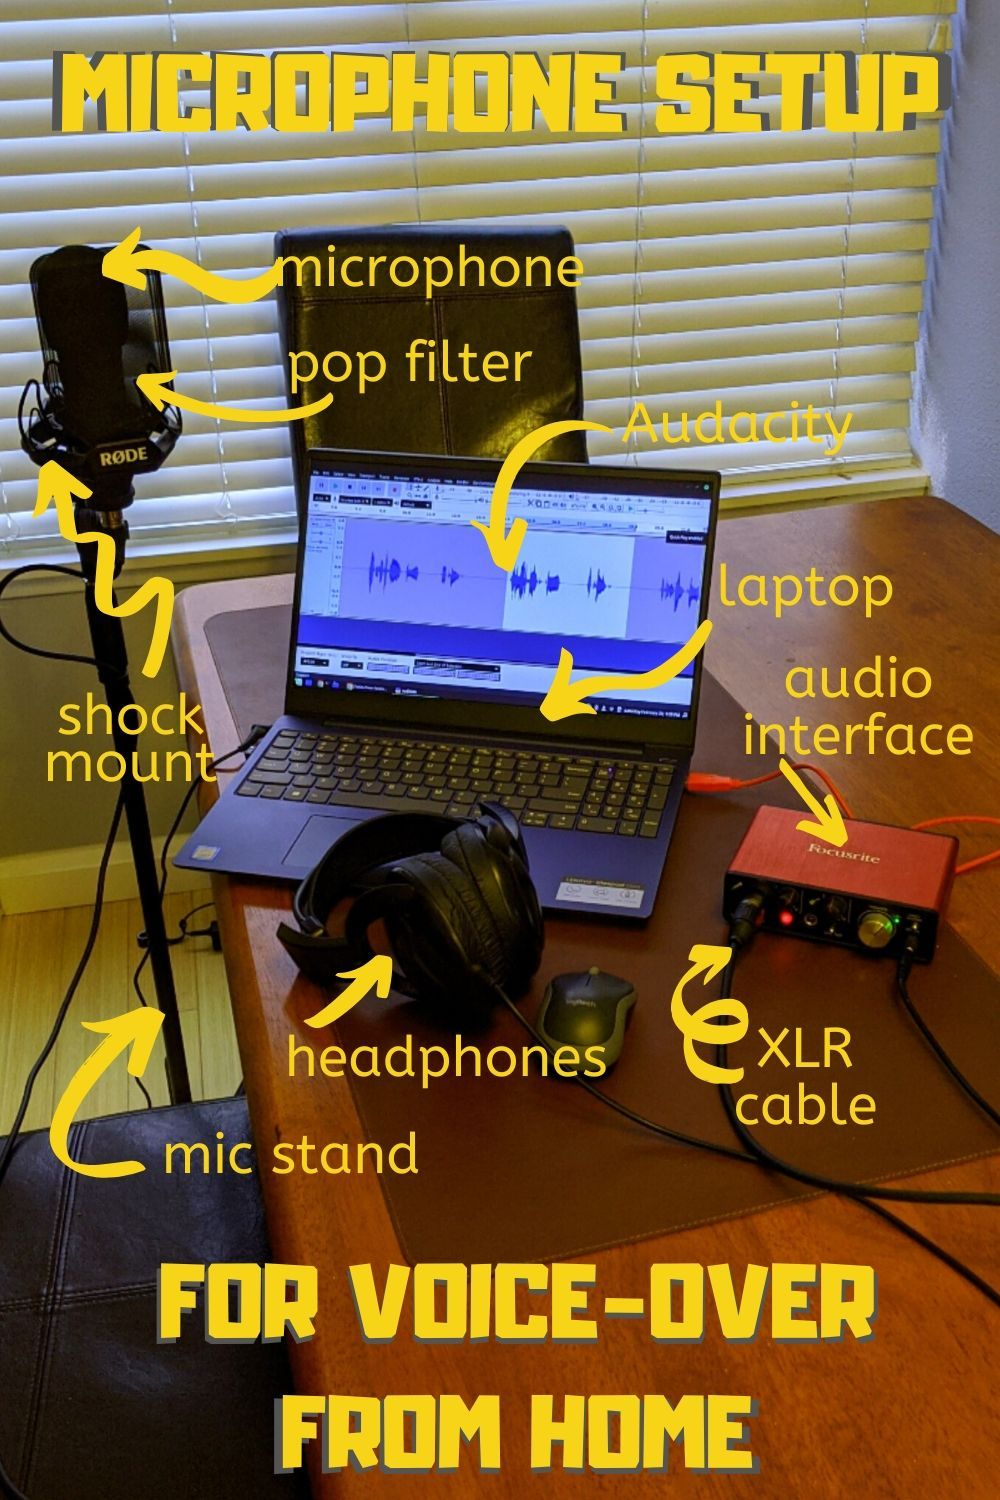 Microphone setup for beginners to voiceover from home in